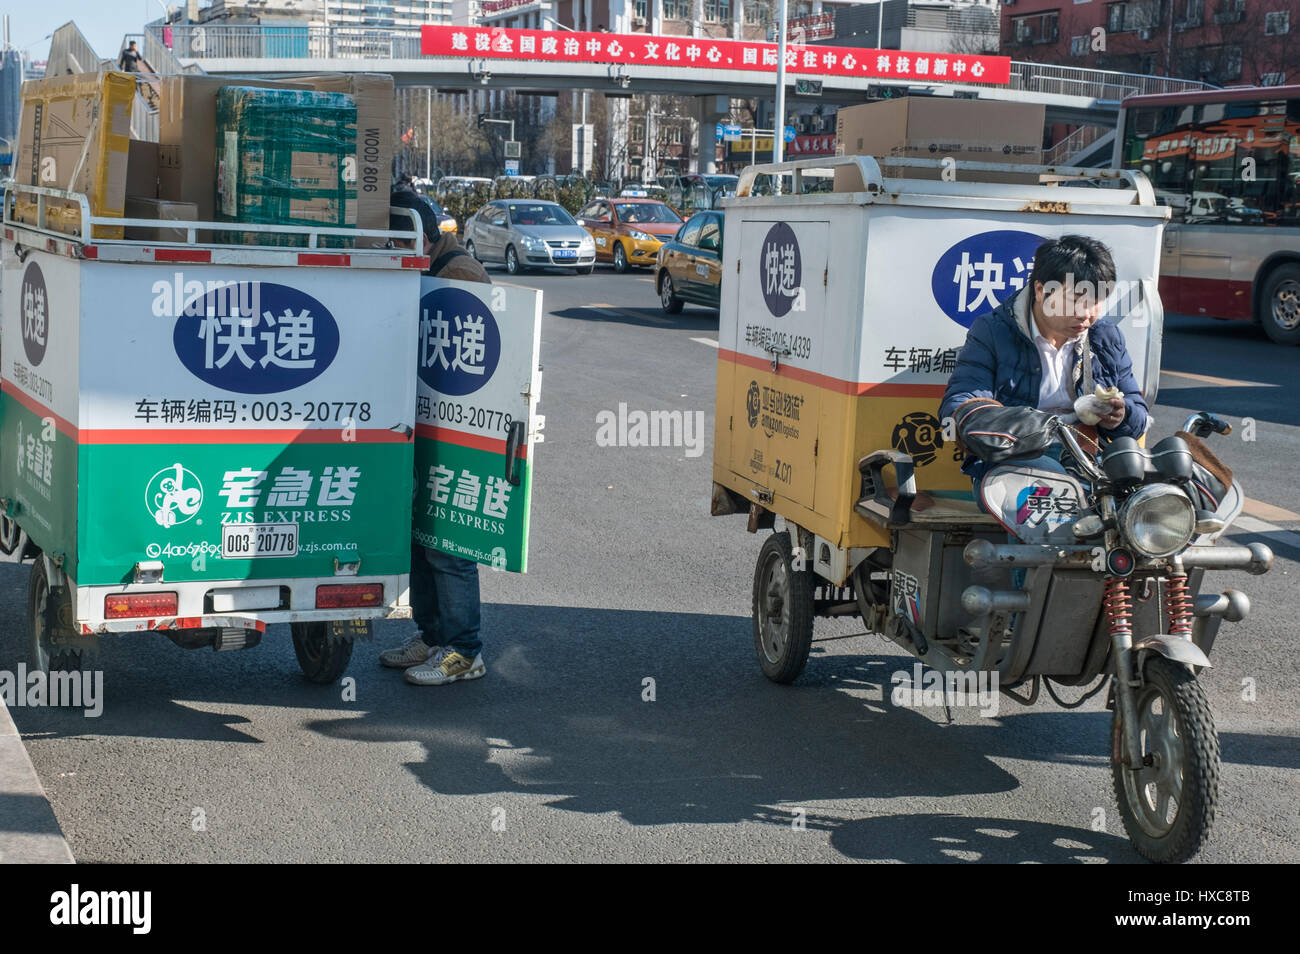 The express-delivery motorcycles shuttle back and forth in the street in Beijing, China. 27-Mar-2017 - Stock Image